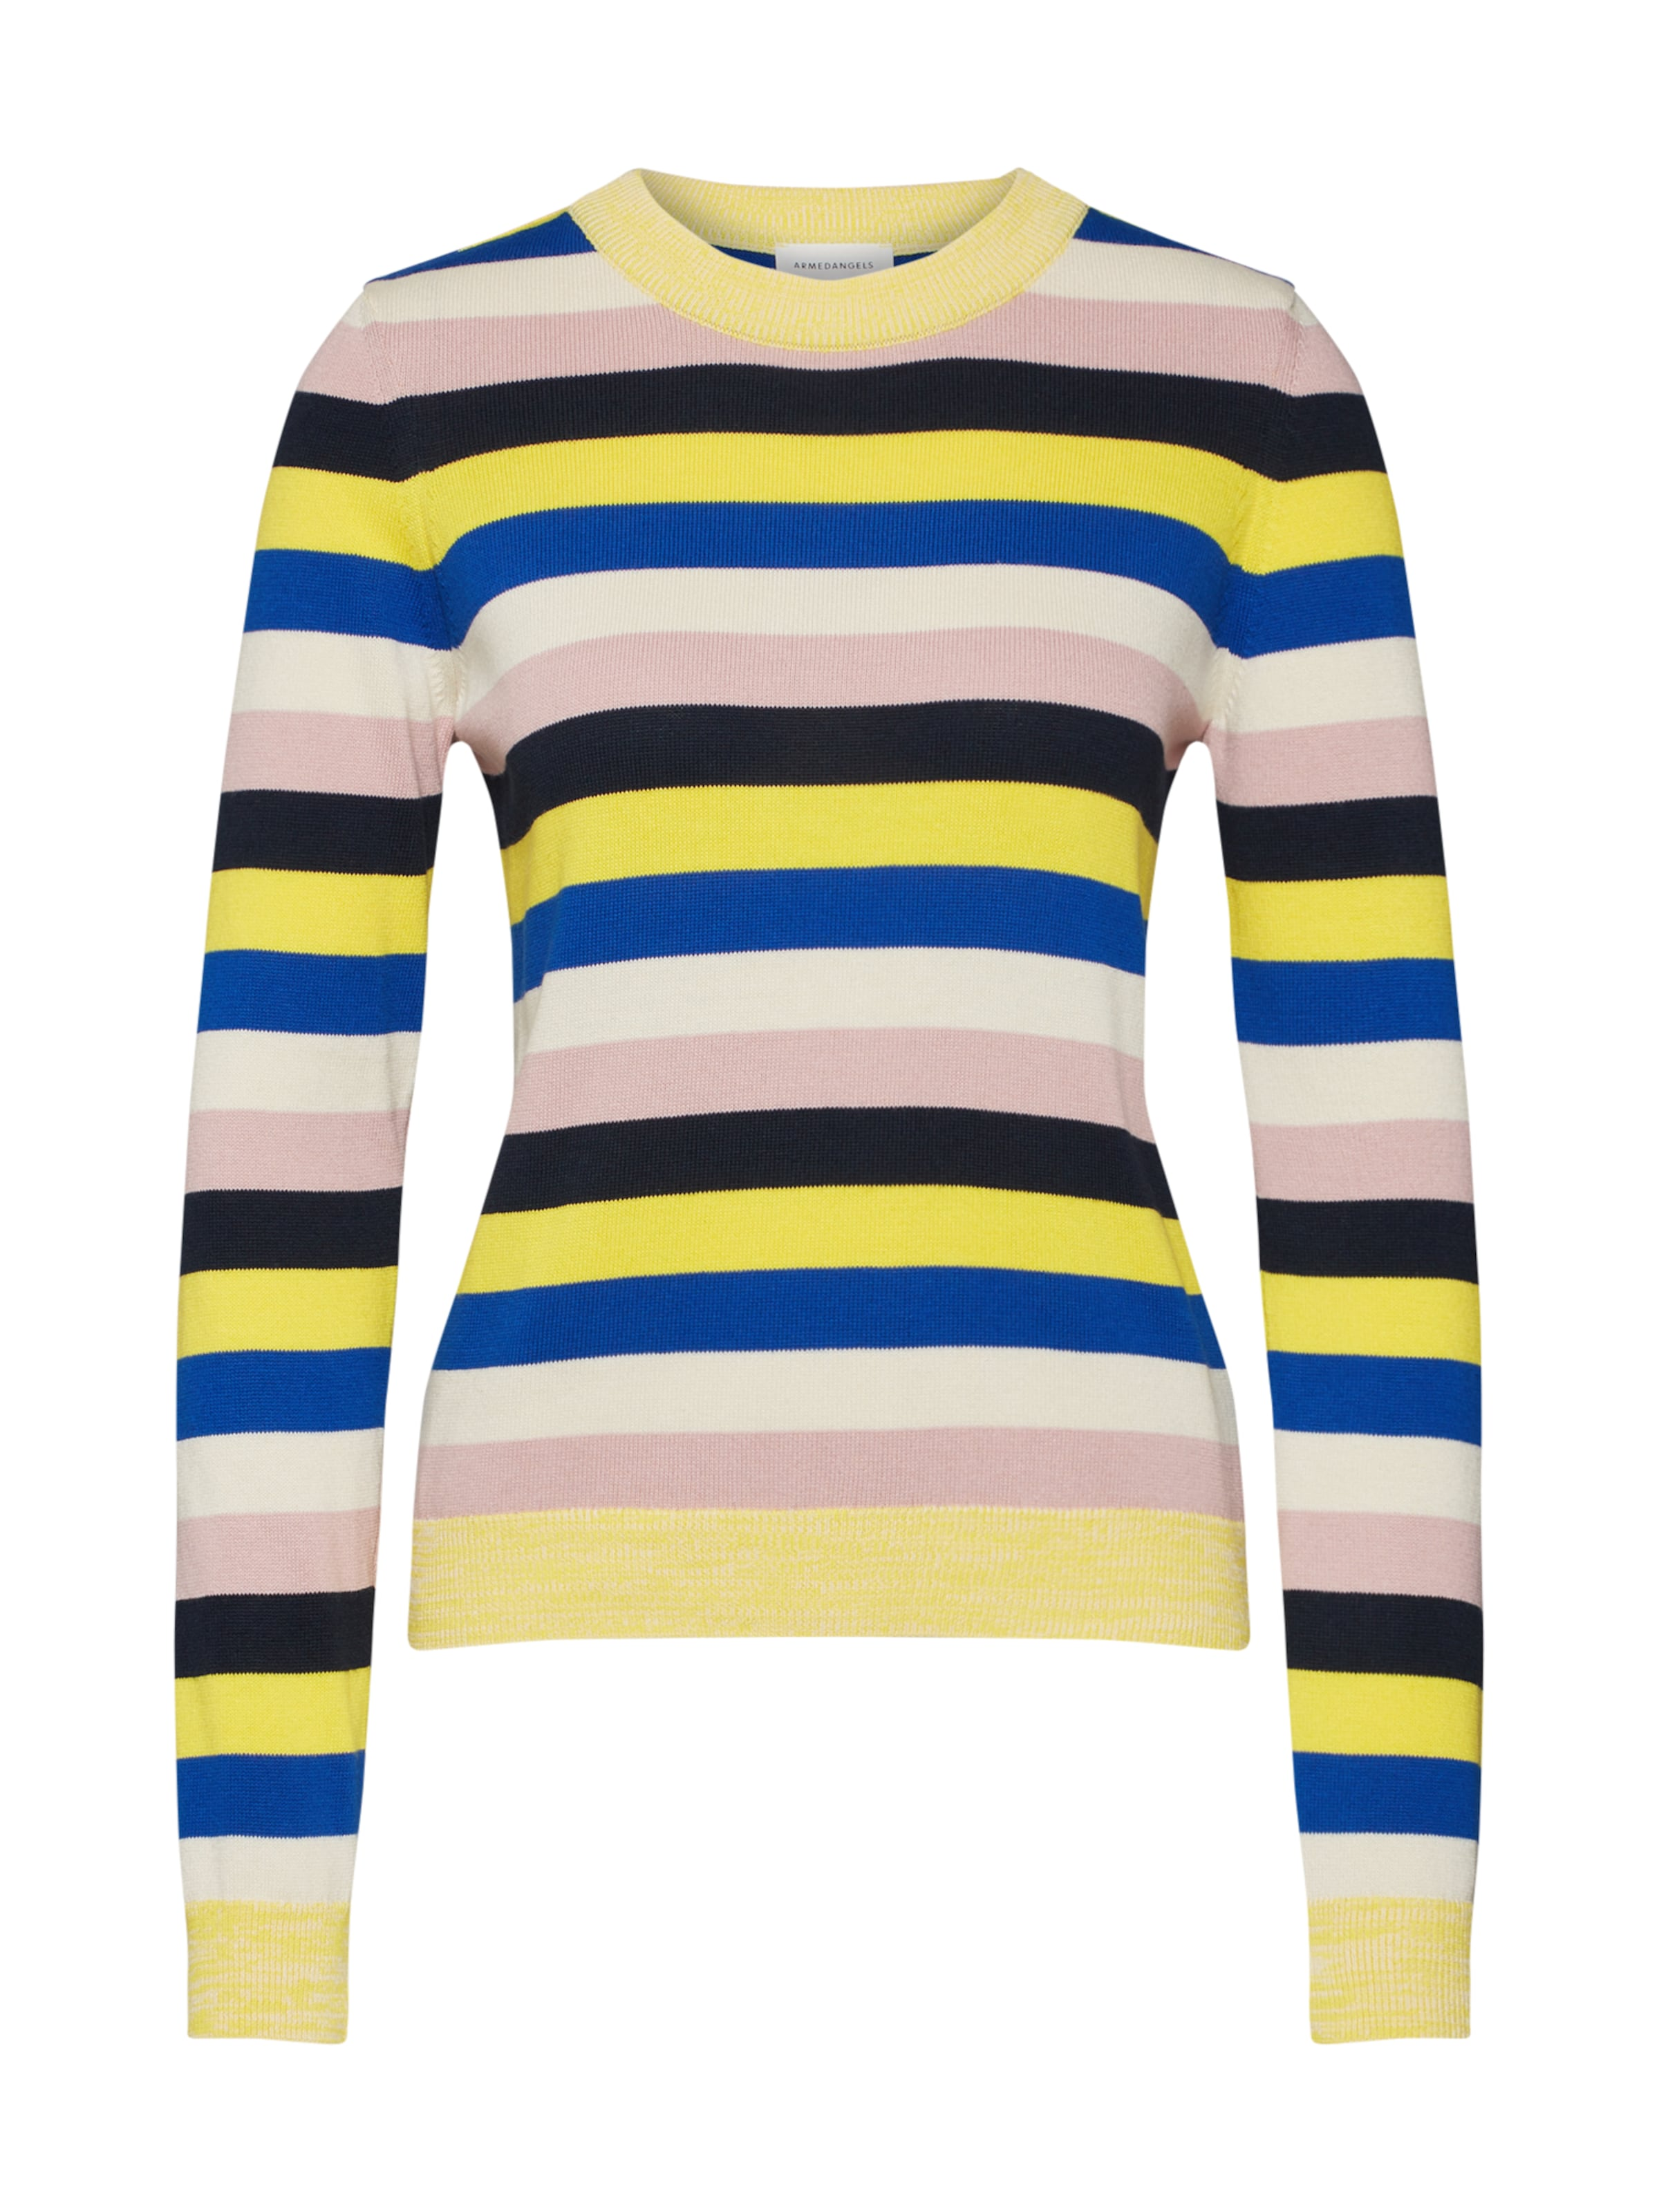 In Armedangels Pullover Rosa 'oxana' CremeGelb 2eIWEHYD9